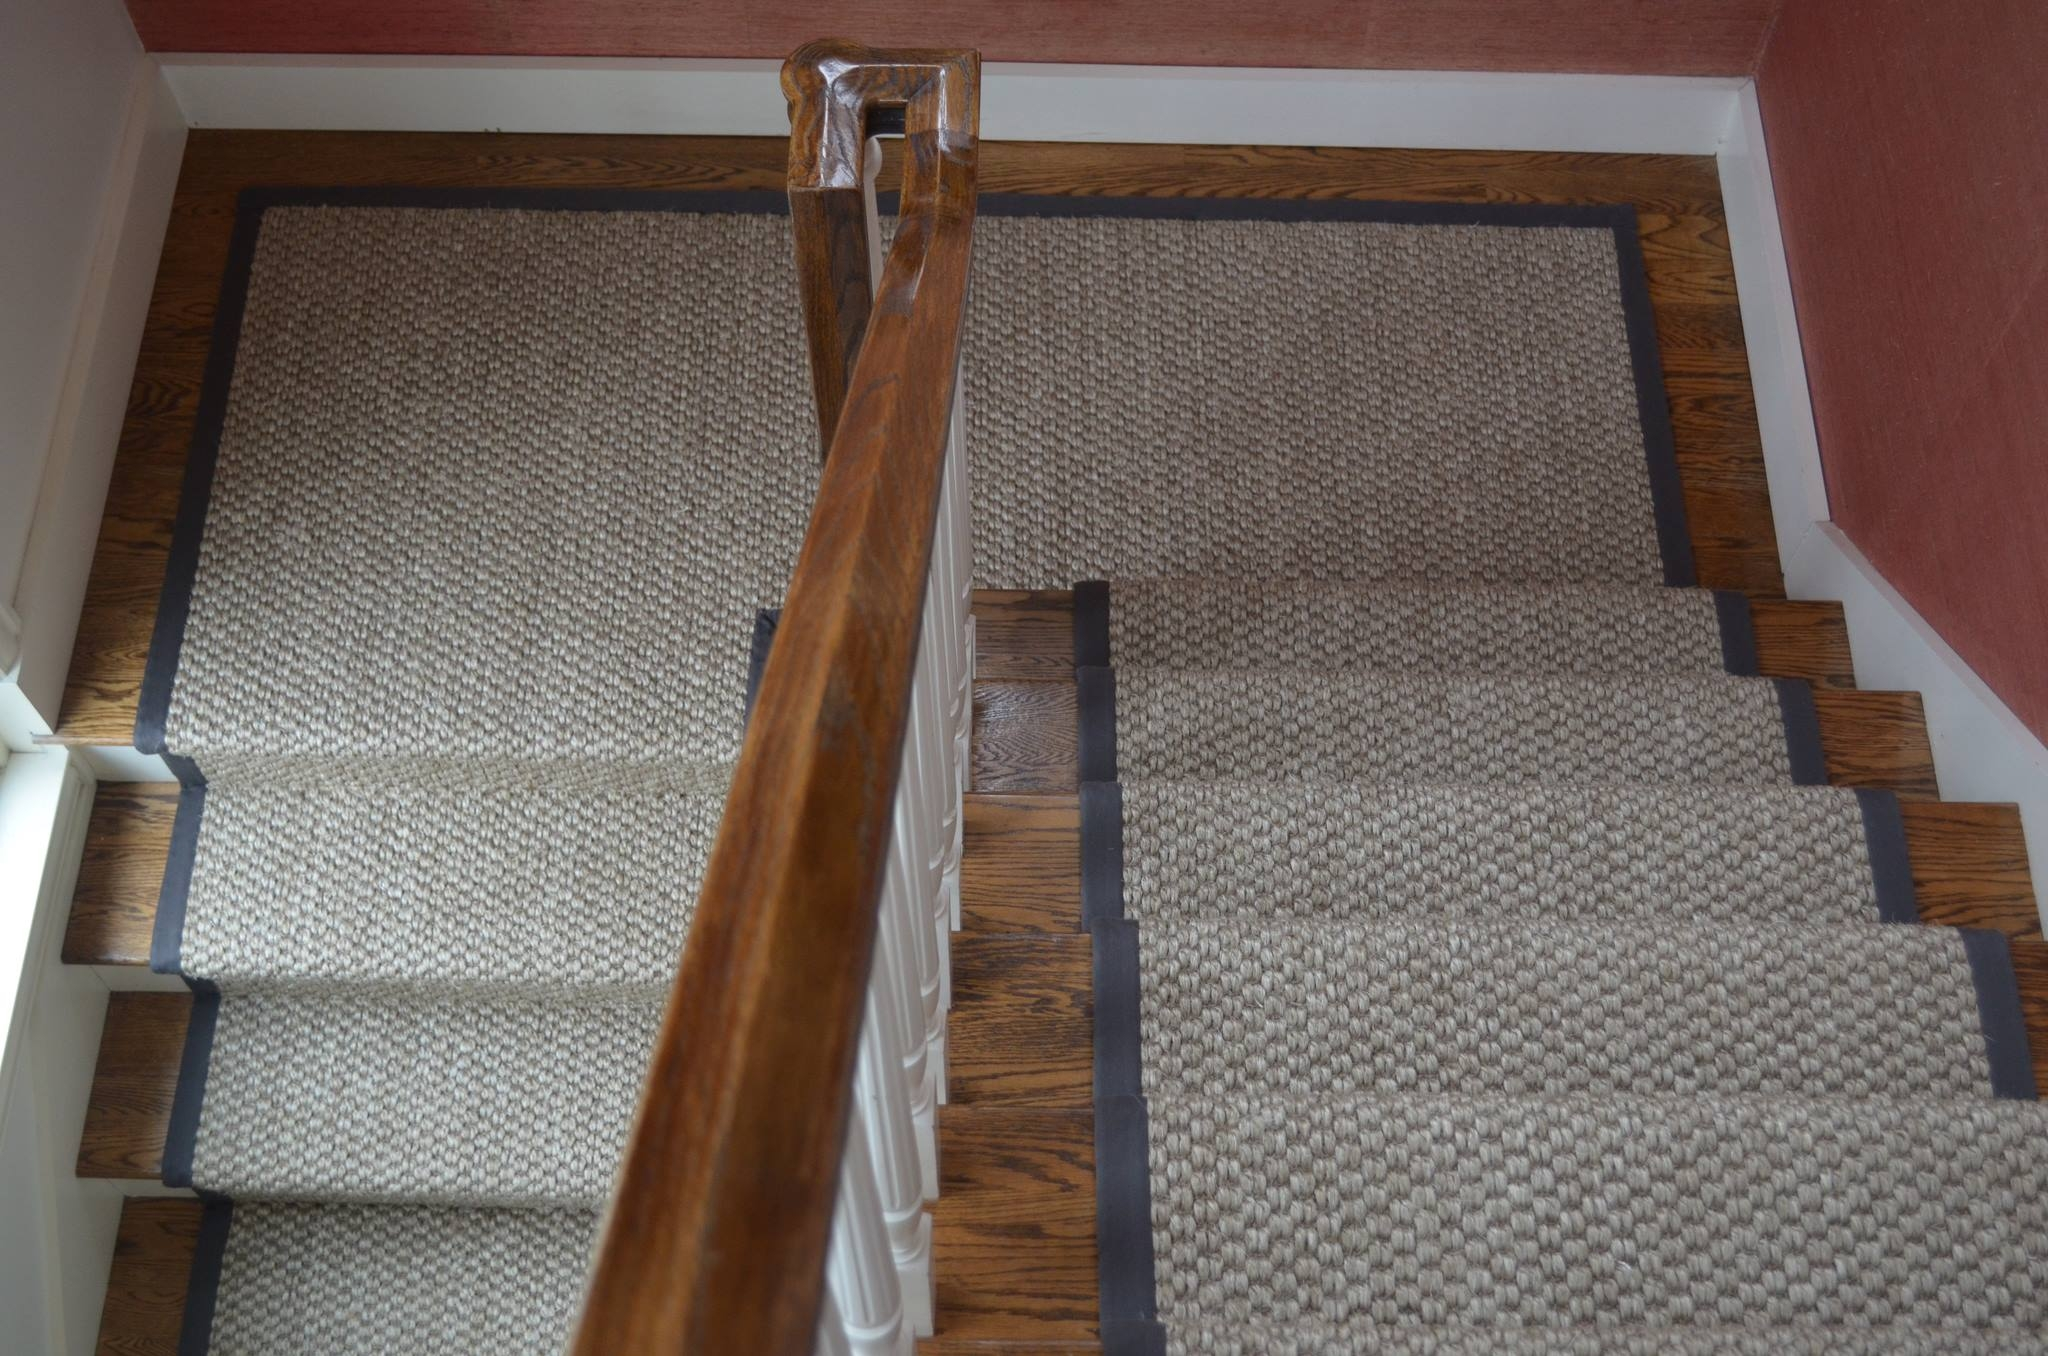 Wonderful Stair Tread Rugs Contemporary 44 Stair Tread Rugs With Regard To Contemporary Runner Rugs For Hallway (#20 of 20)